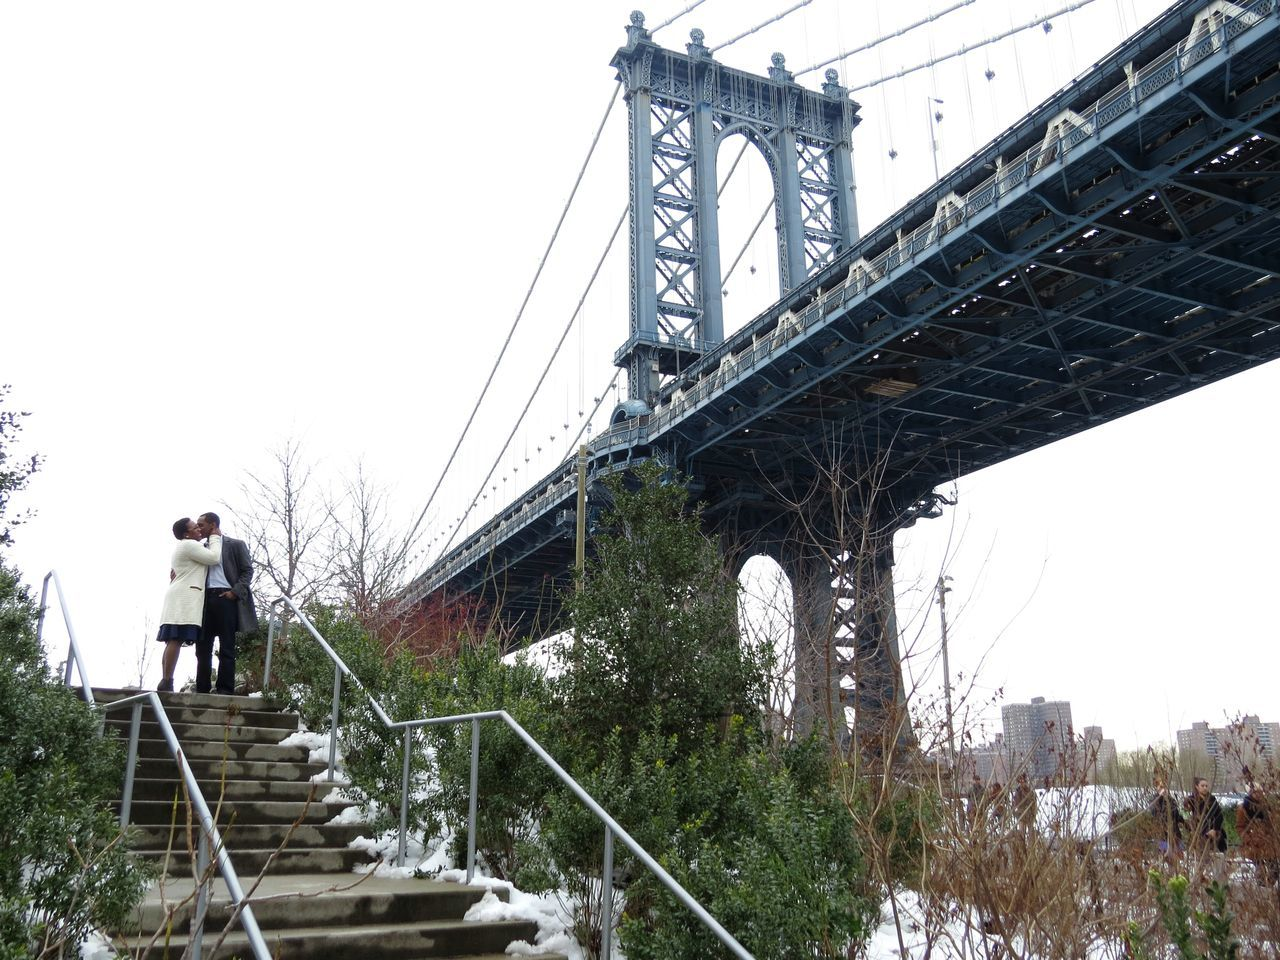 Bridge - Man Made Structure Sky Built Structure Mature Adult Connection Suspension Bridge Outdoors Engineering Mature Men Rear View Full Length Travel Destinations Day Men Architecture Tree People One Person Young Adult Adult New York Brooklyn Valentine's Day  Valentine Love